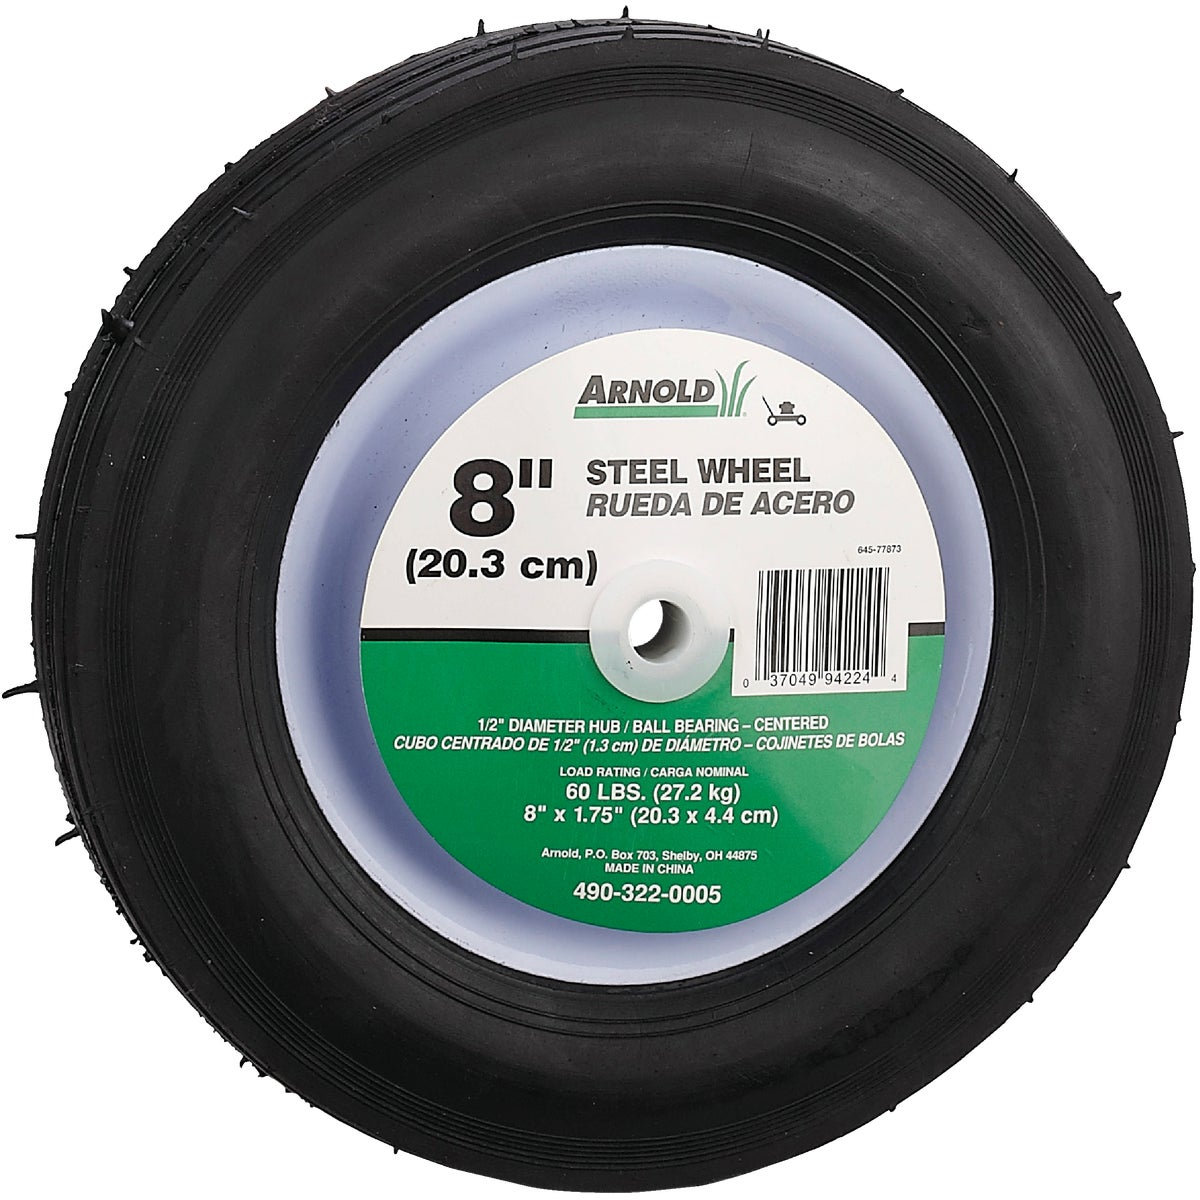 8X1.75 CNTR STEEL WHEEL - 490-322-0005 by Arnold Corp